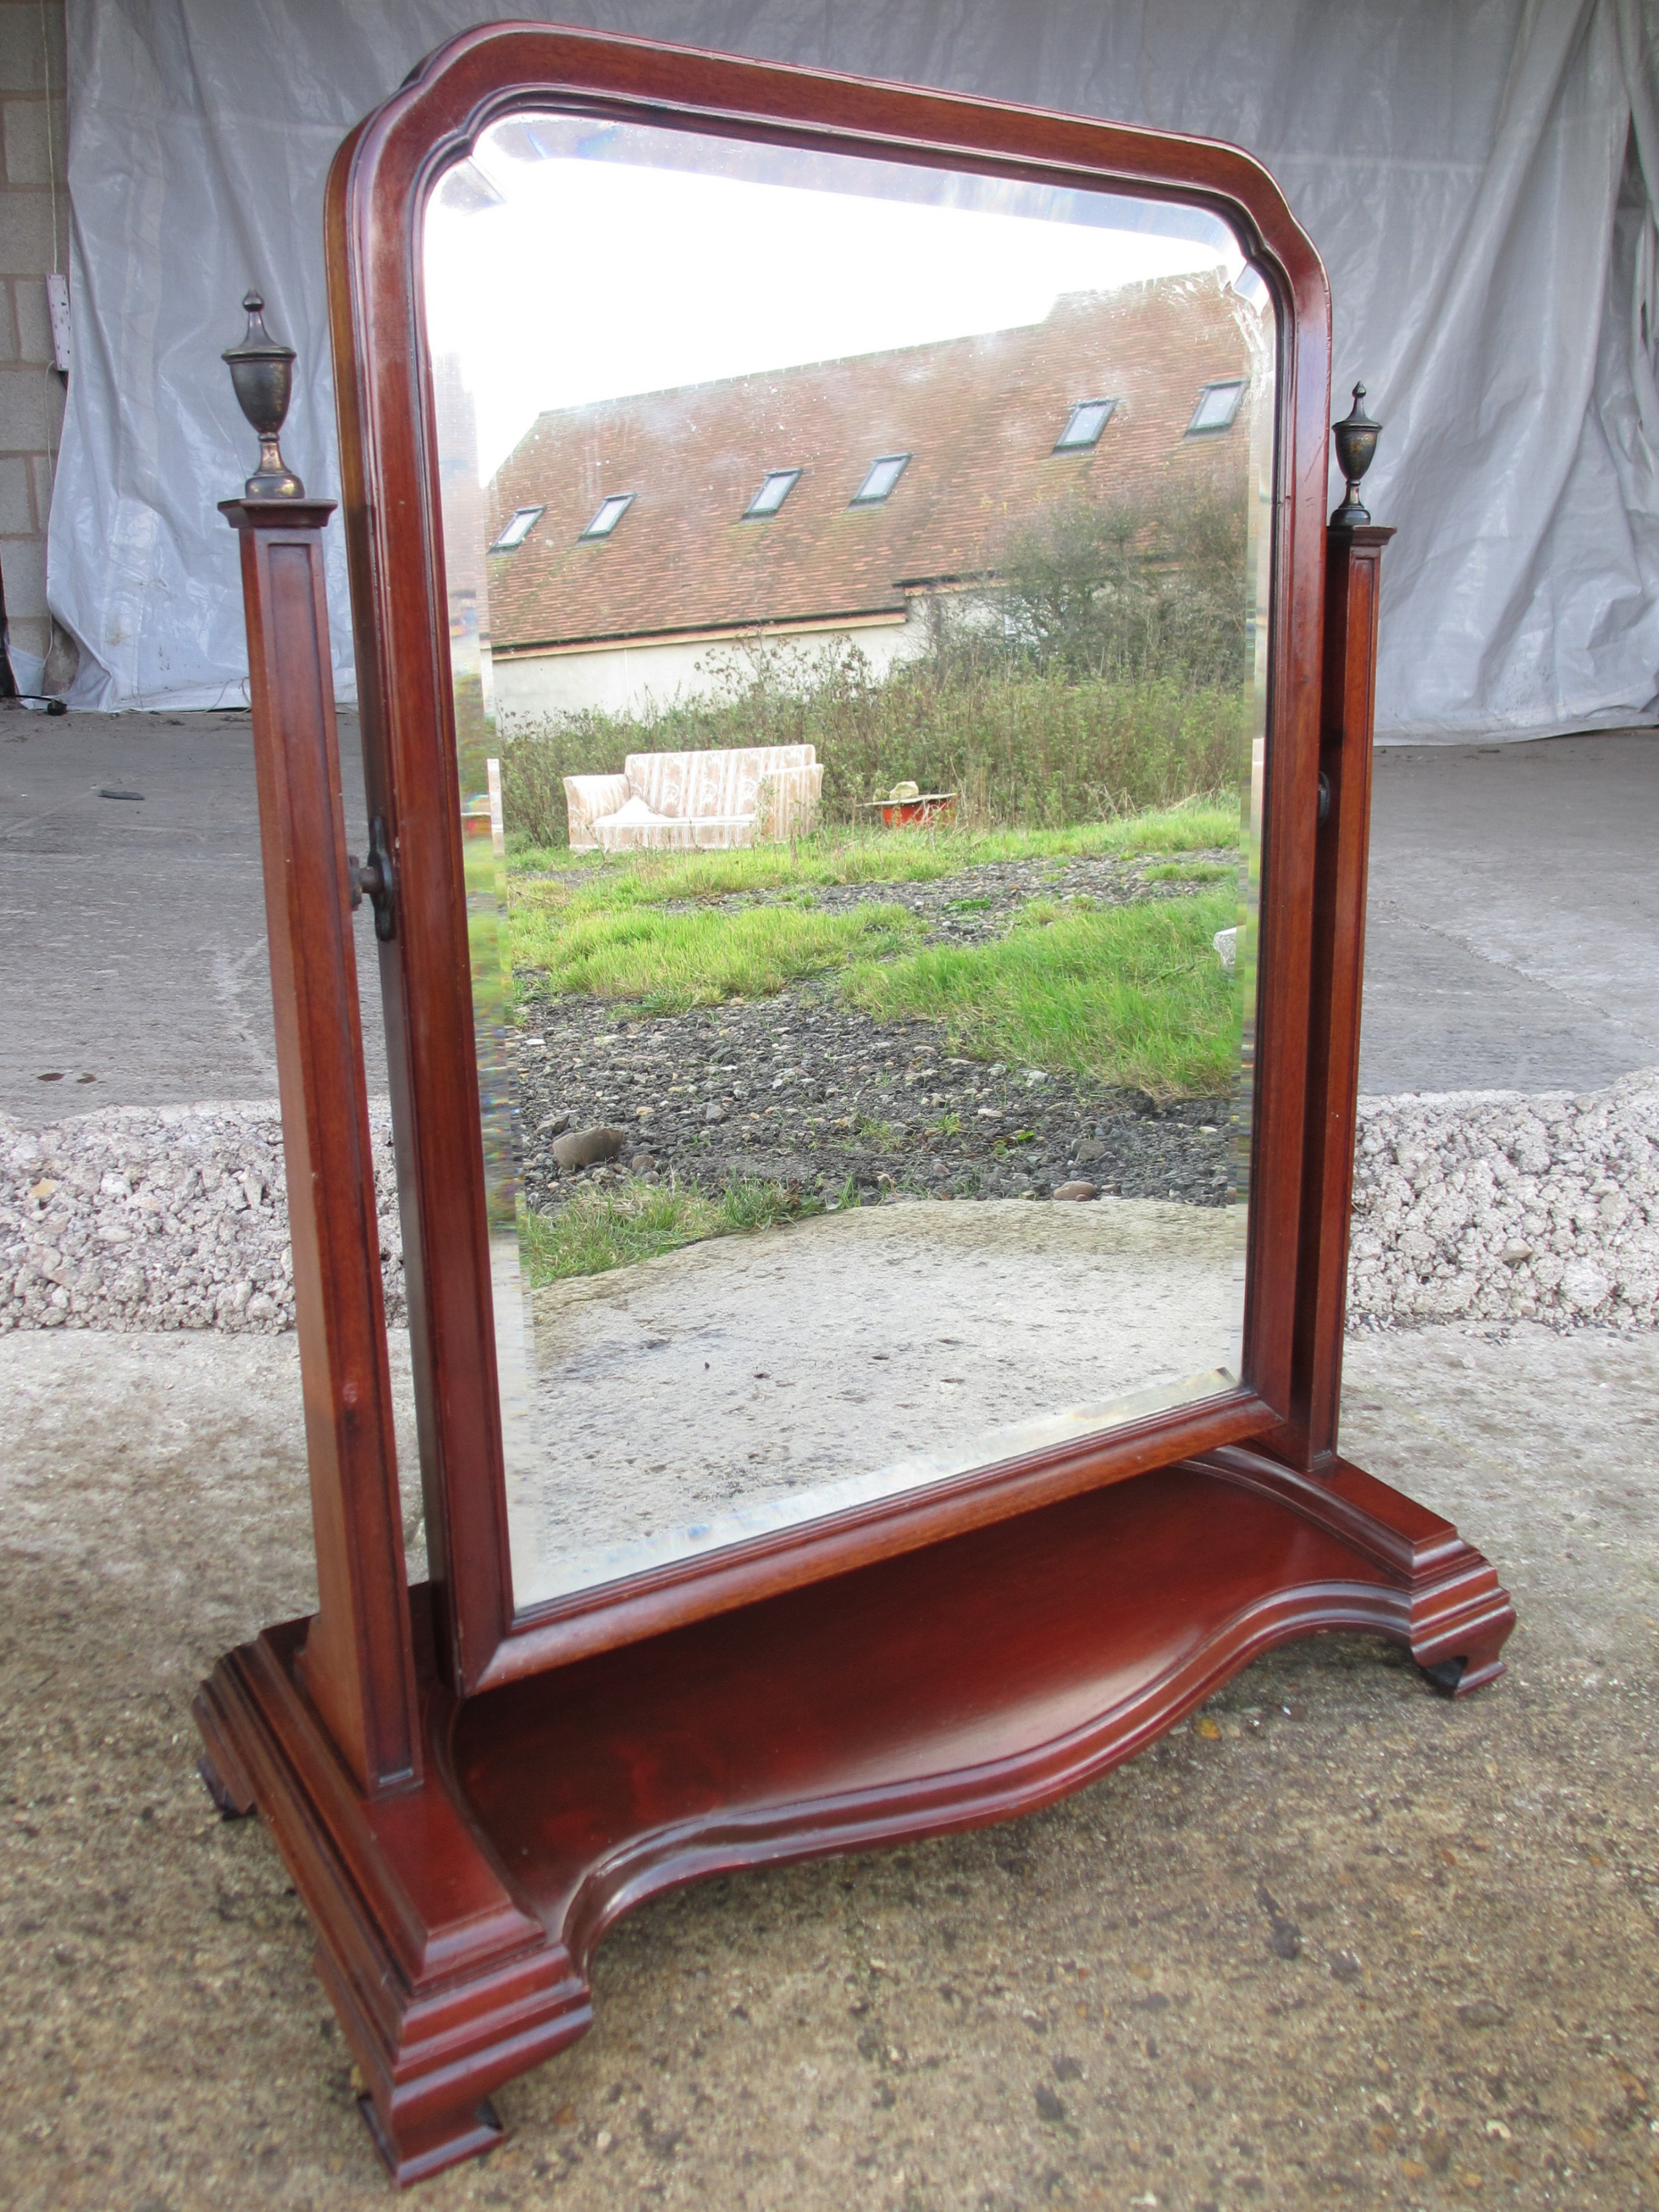 19th century bevel edged swing dressing table mirror with brass finials